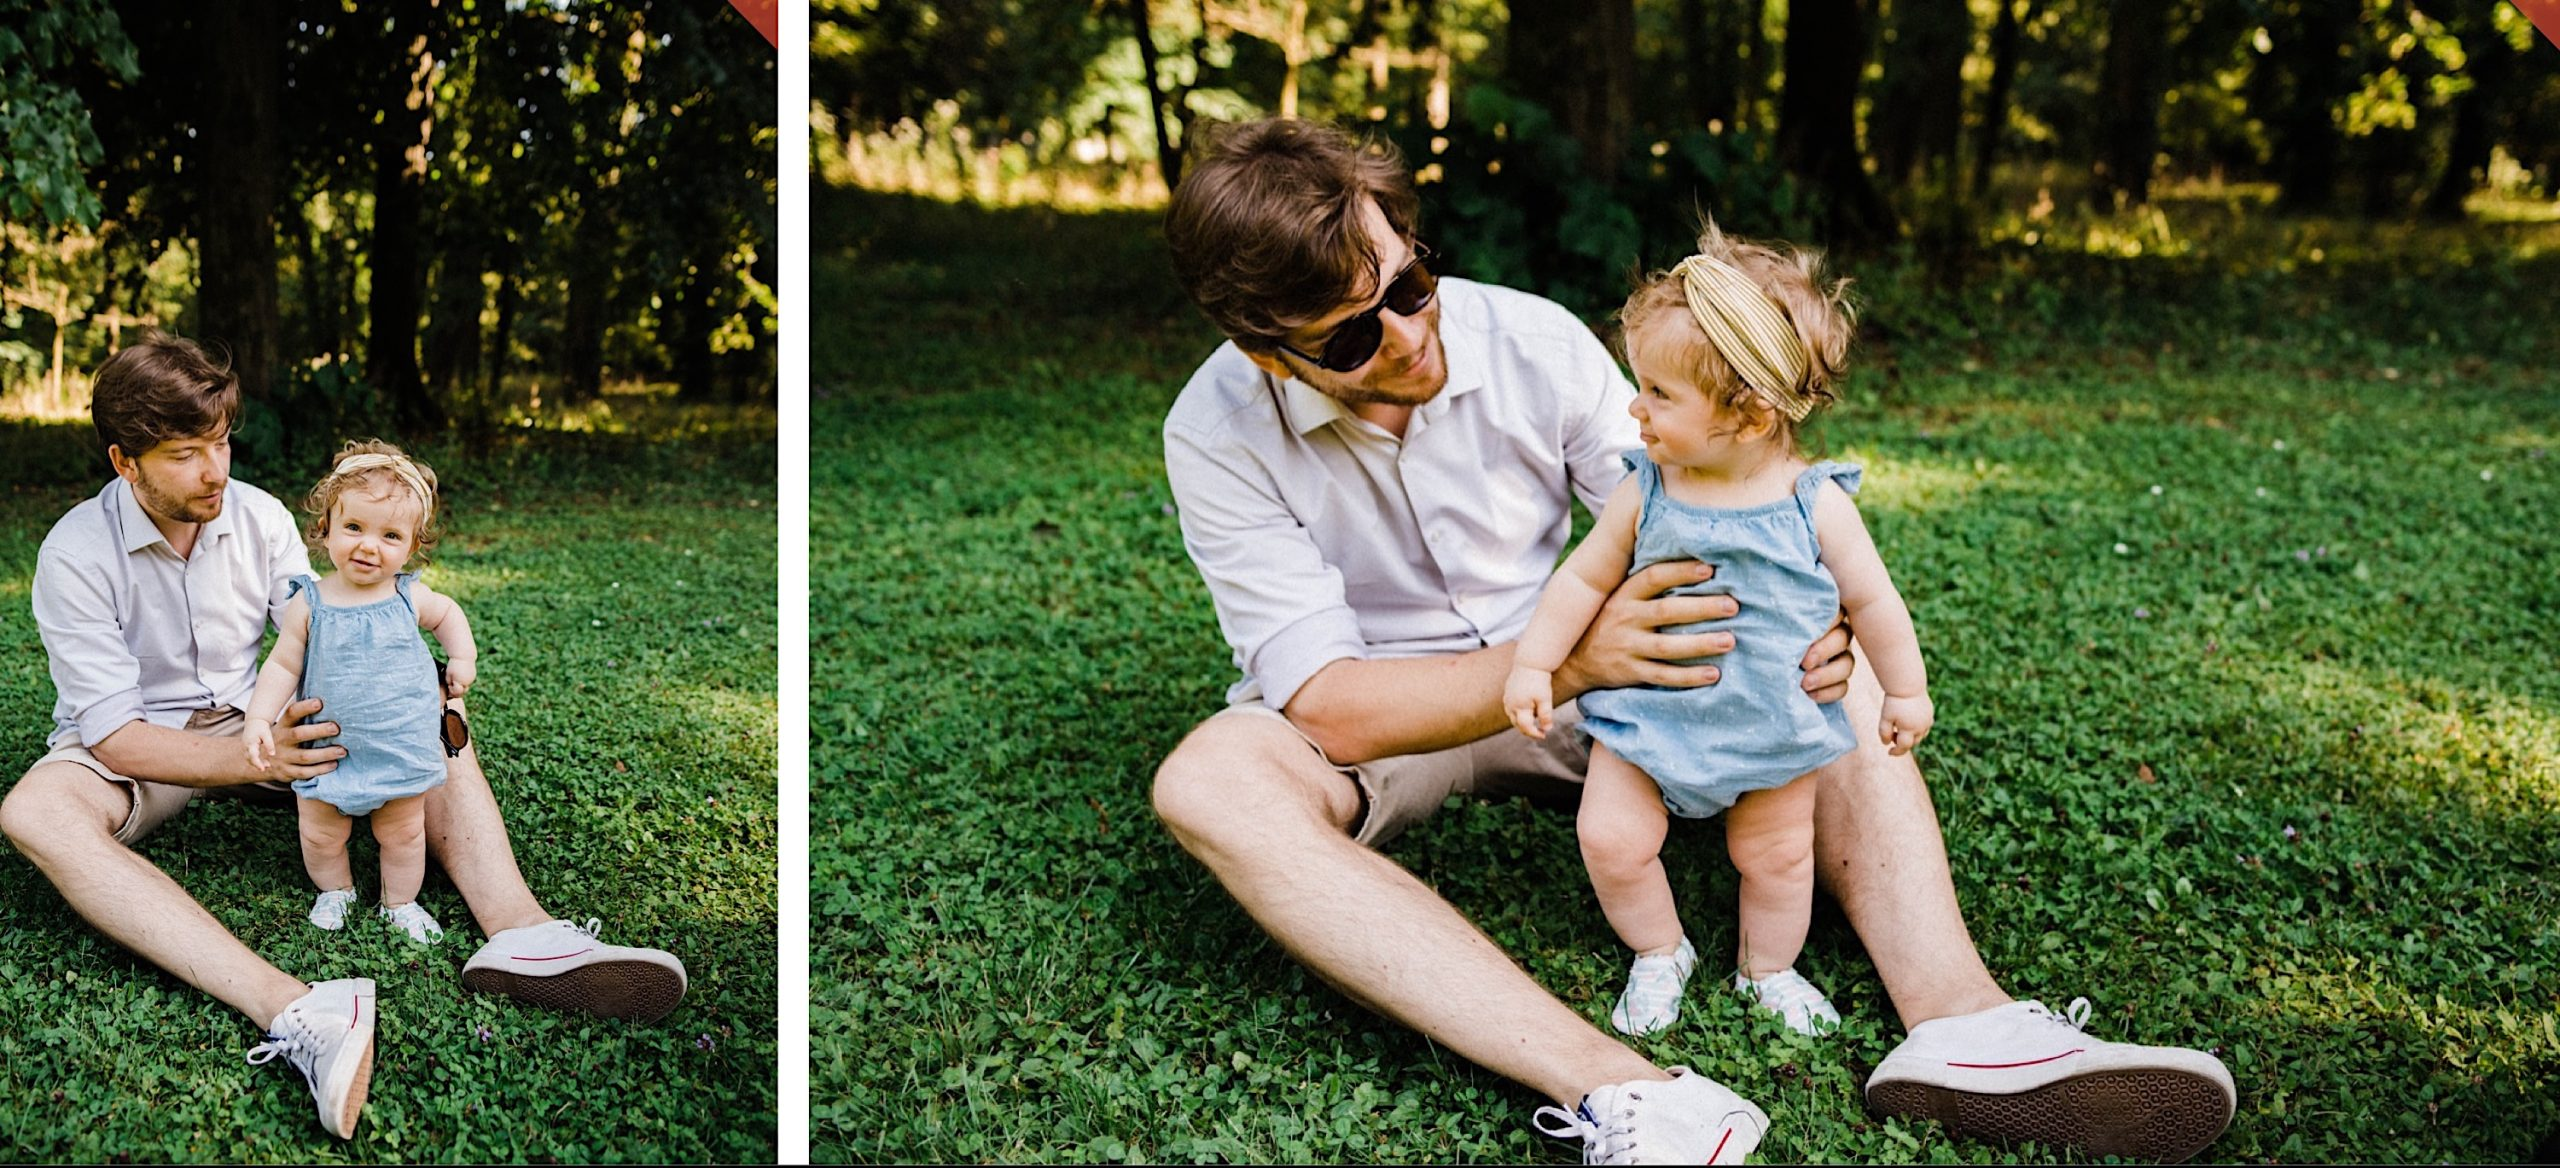 Side-by-side images from a Monza Family Photography session of a Dad sitting in the grass, holding his baby girl who's learning to walk.